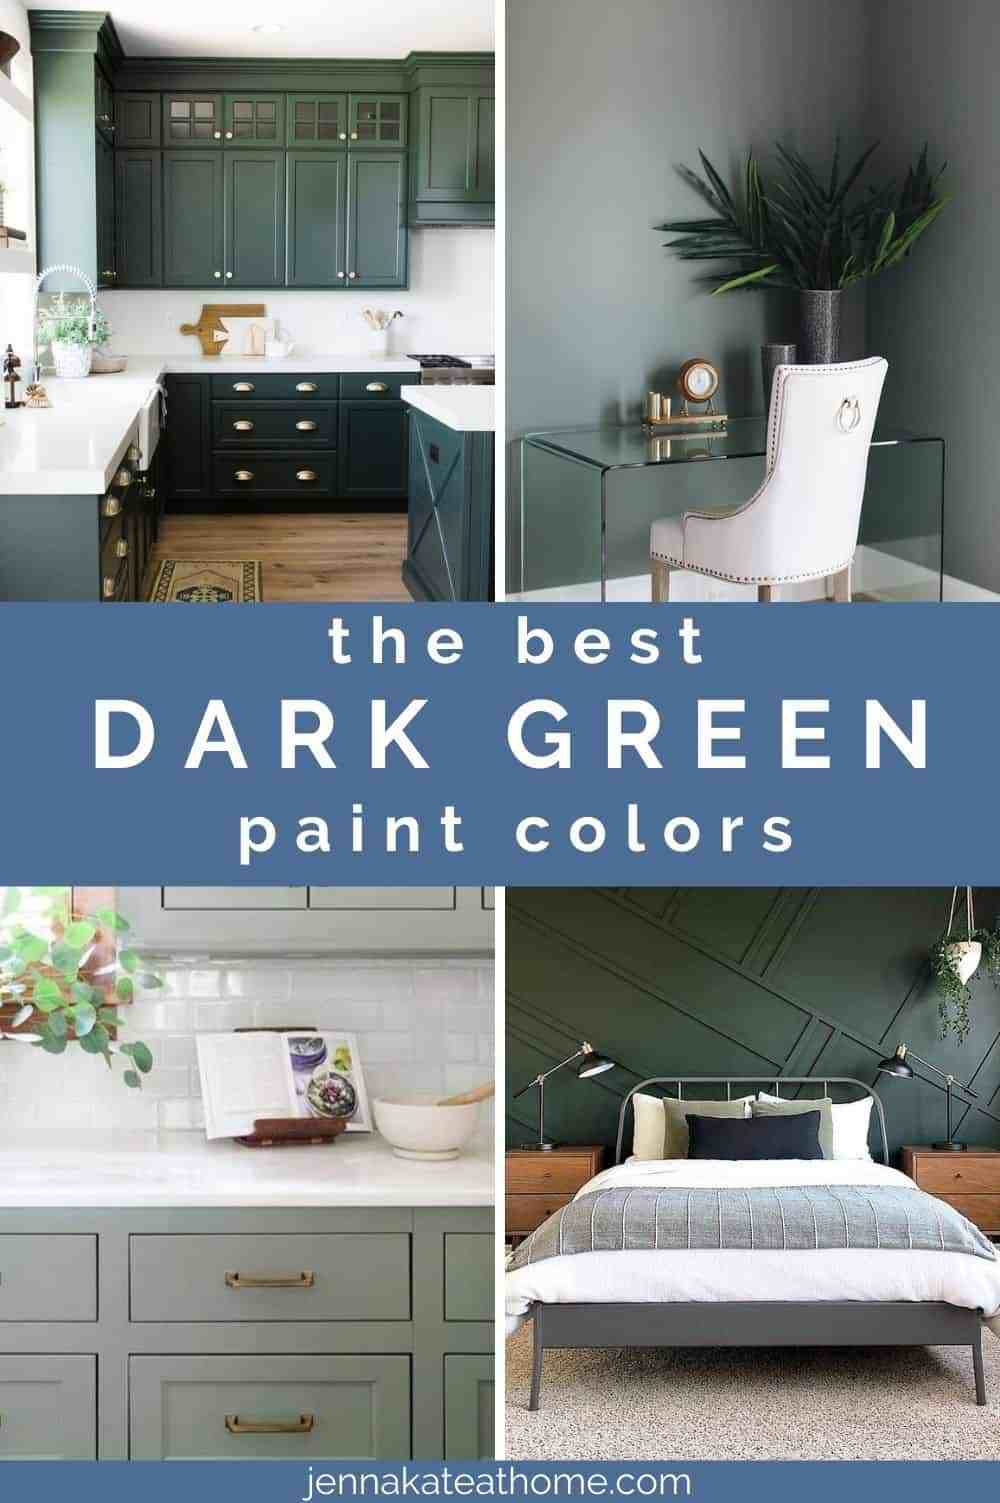 the best dark green paint colors